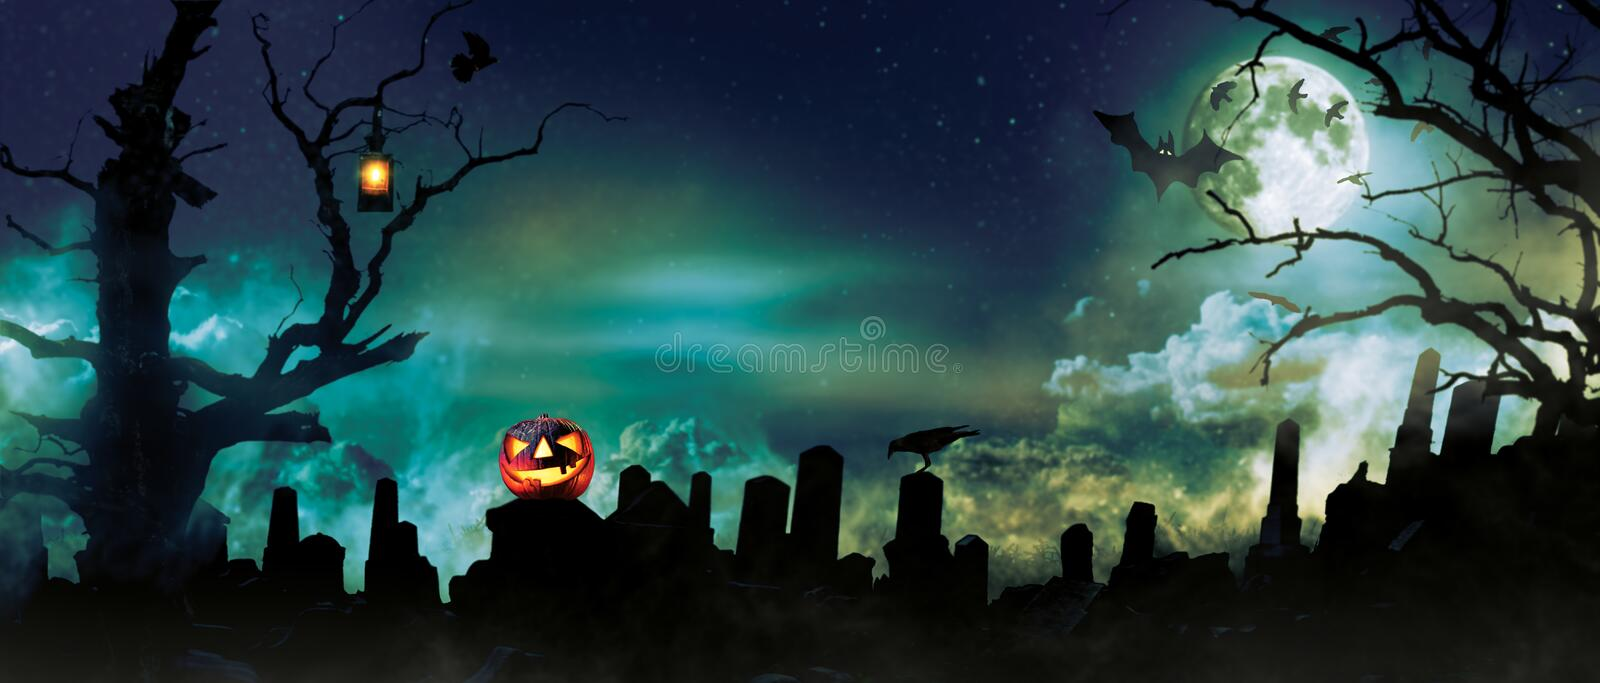 Spooky halloween background with graveyard stones silhouettes royalty free stock photo